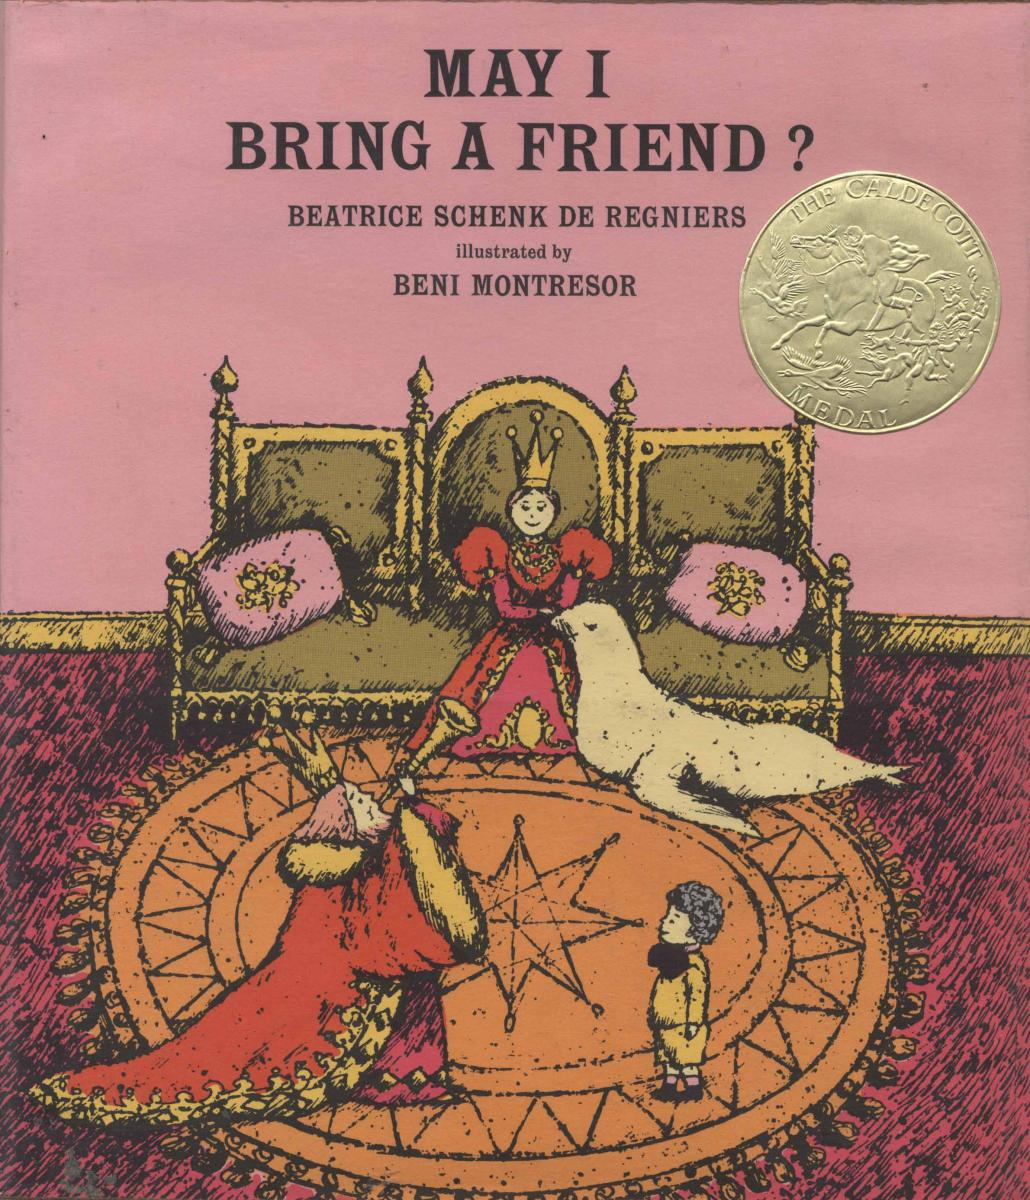 May I Bring a Friend? - book cover image